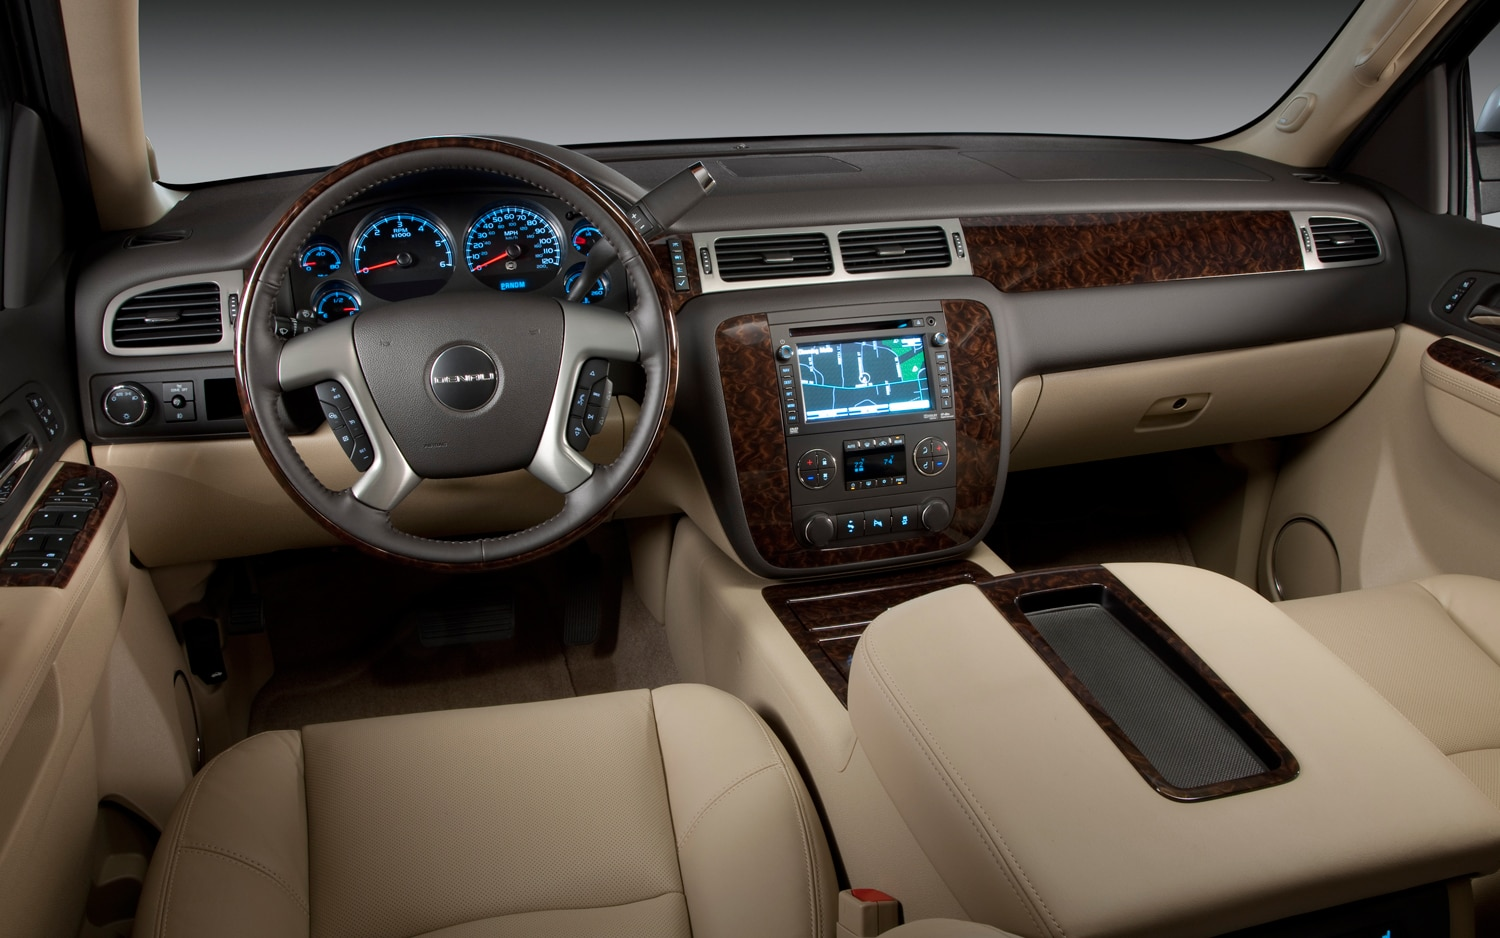 2013 GMC Yukon Denali Dash View